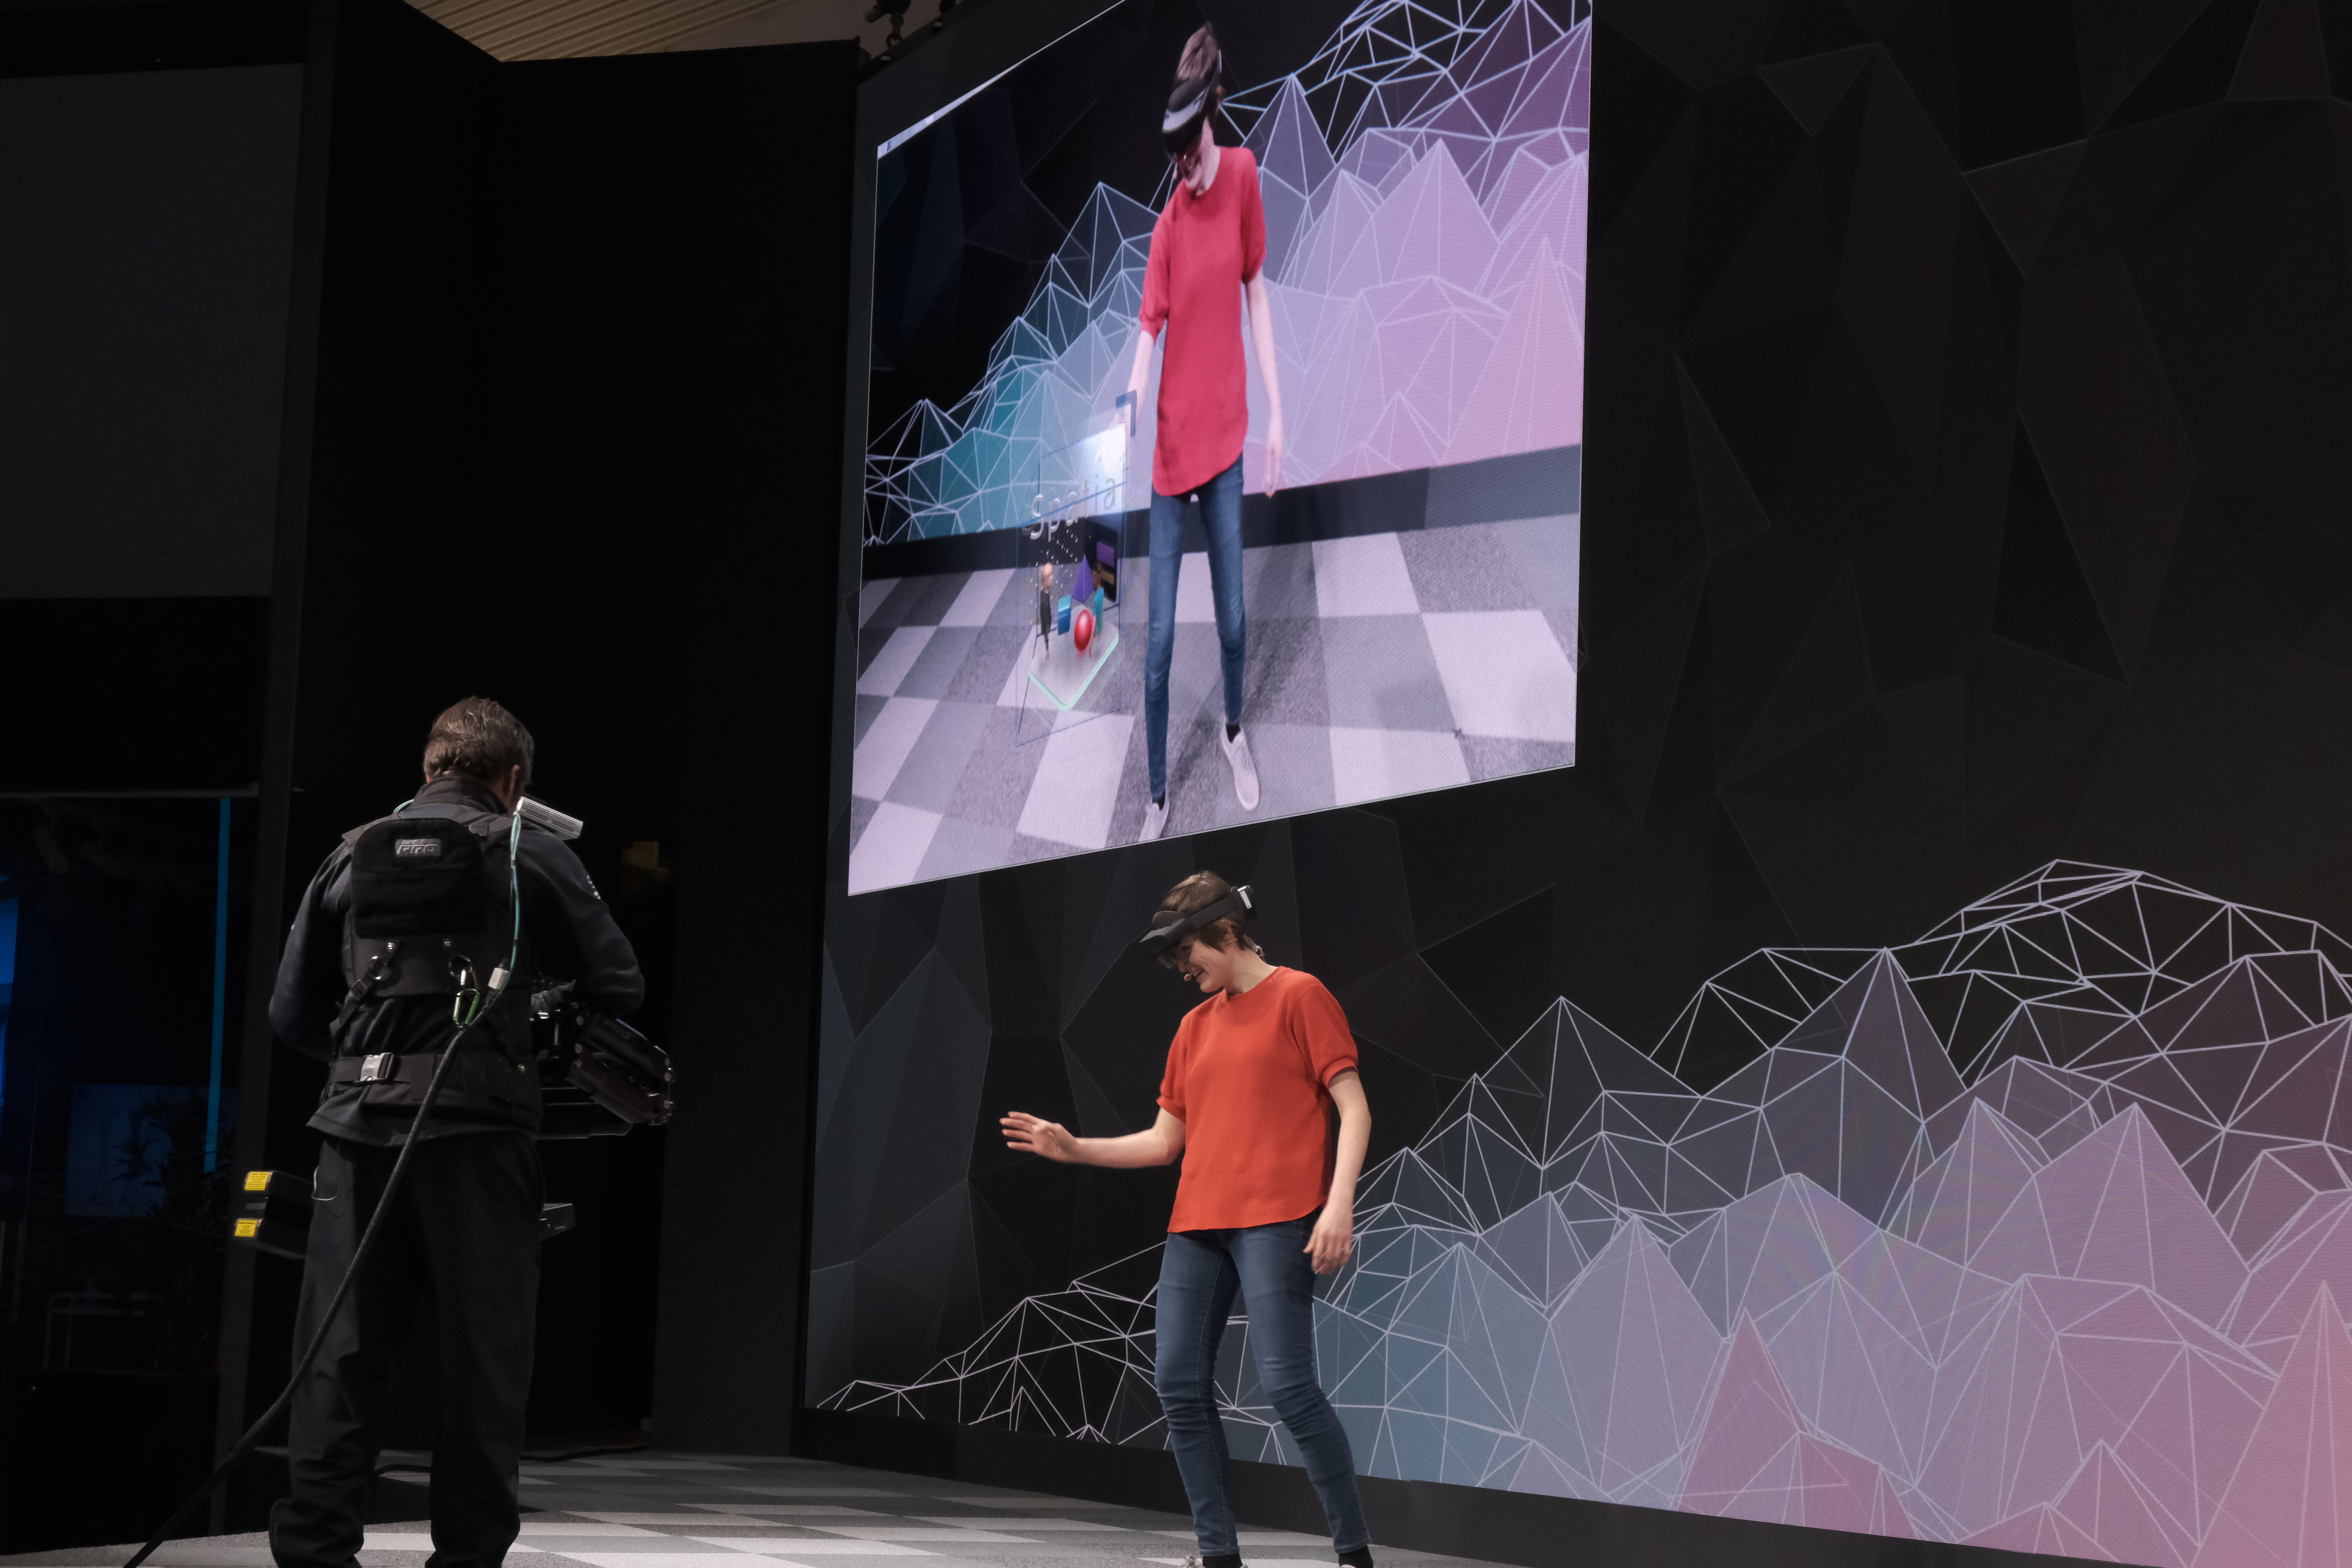 Say hello to Microsoft's new $3,500 HoloLens with twice the field of view Say hello to Microsoft's new $3,500 HoloLens with twice the field of view Microsoft MWC0083HOLOLENS 2